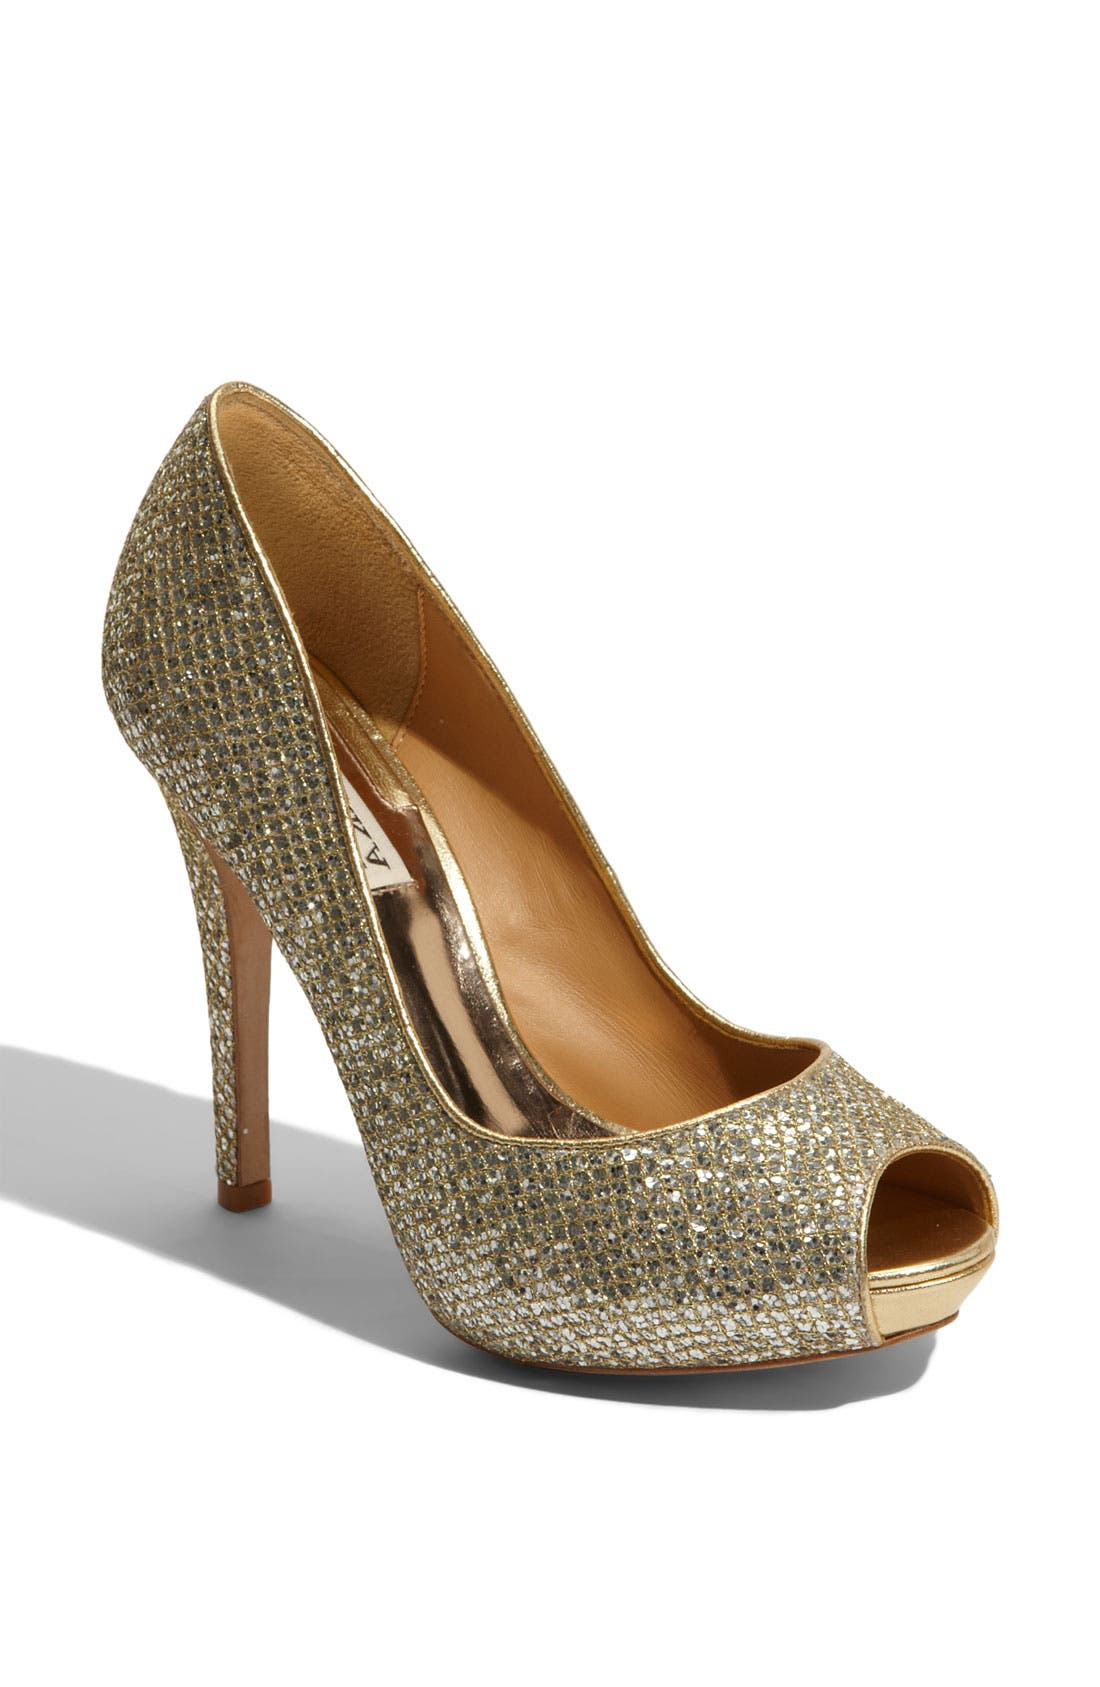 Badgley Mischka 'Humbie II' Pump, Main, color, 720